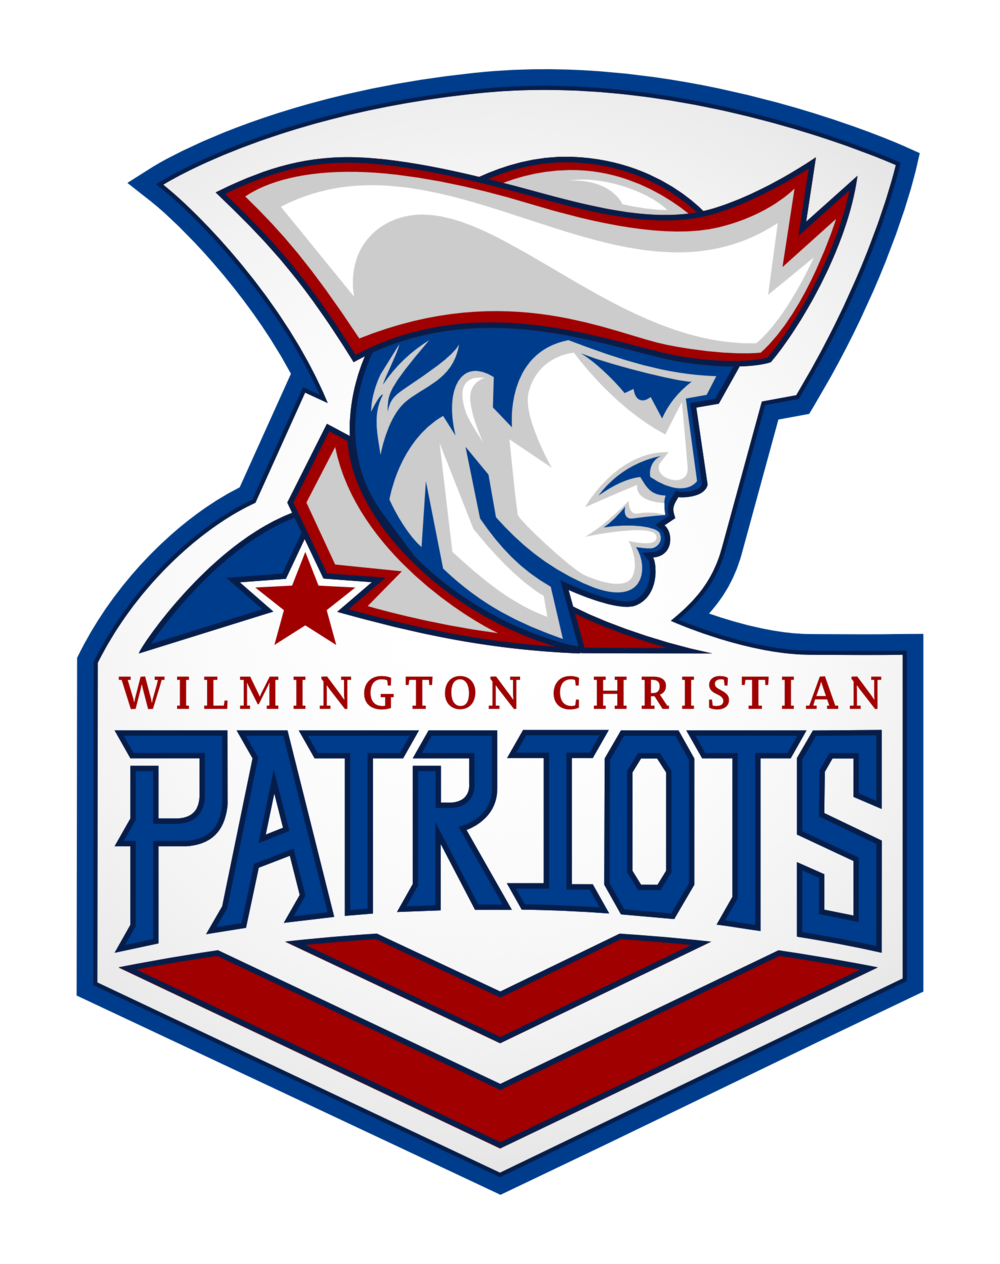 Final Patriot Logo.png